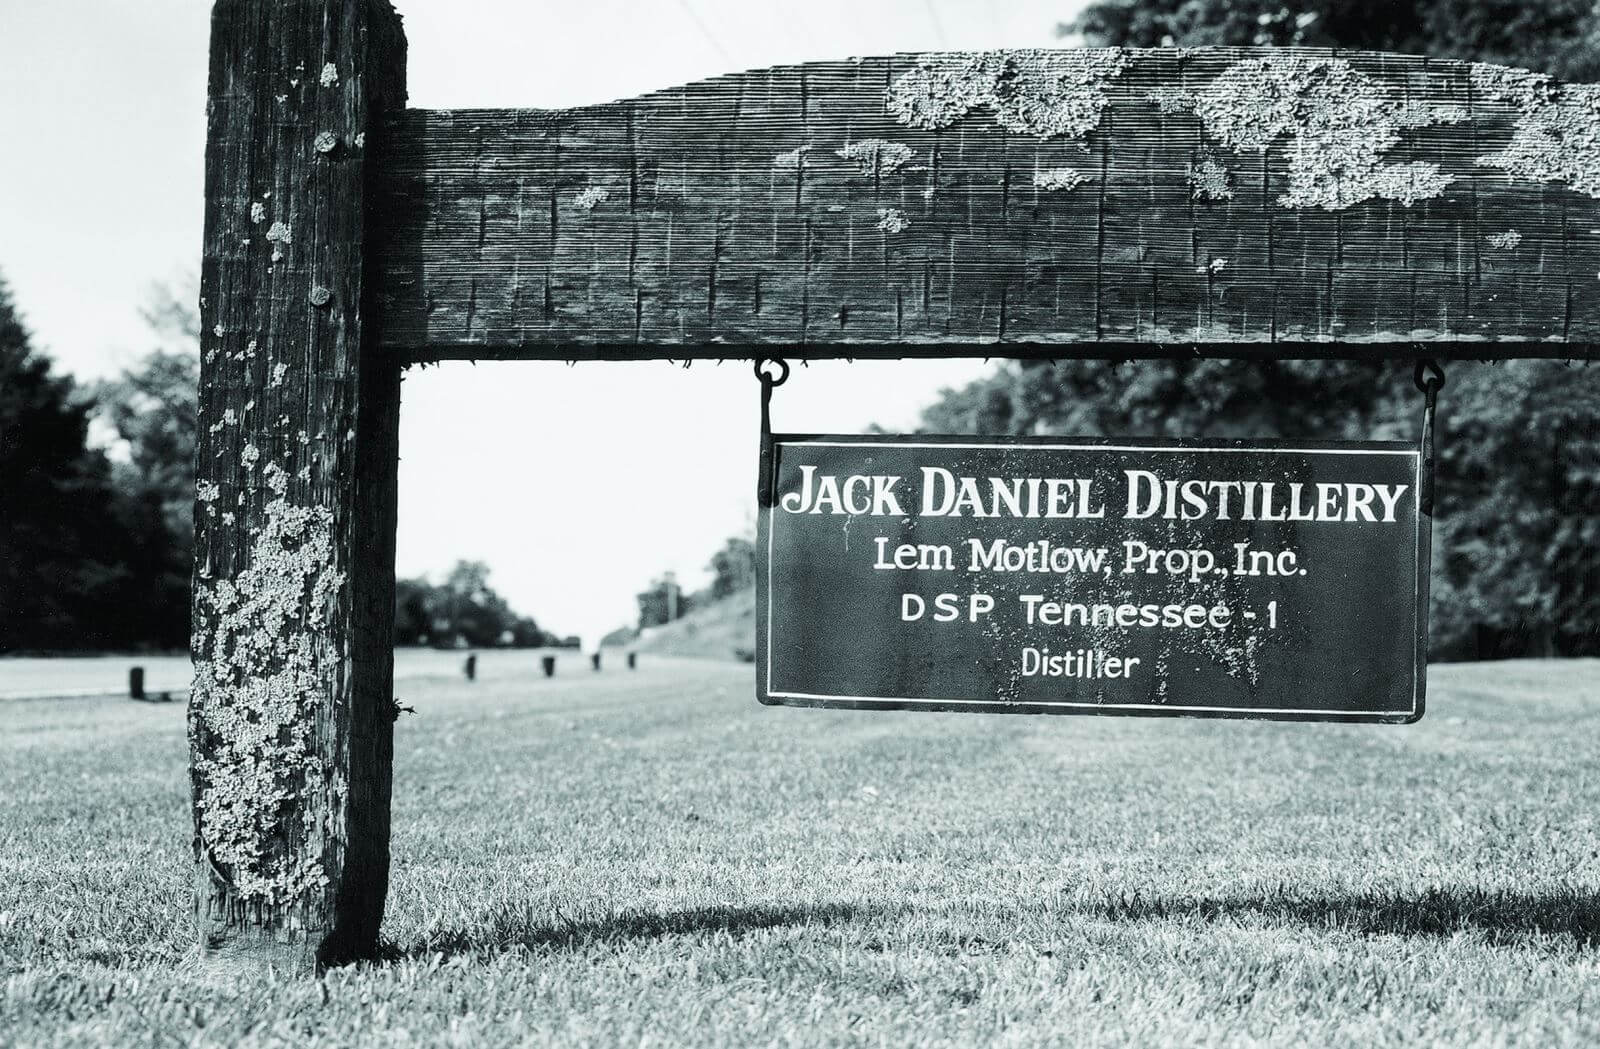 Jack Daniel's Distillery in Lynchburg, Tennessee.